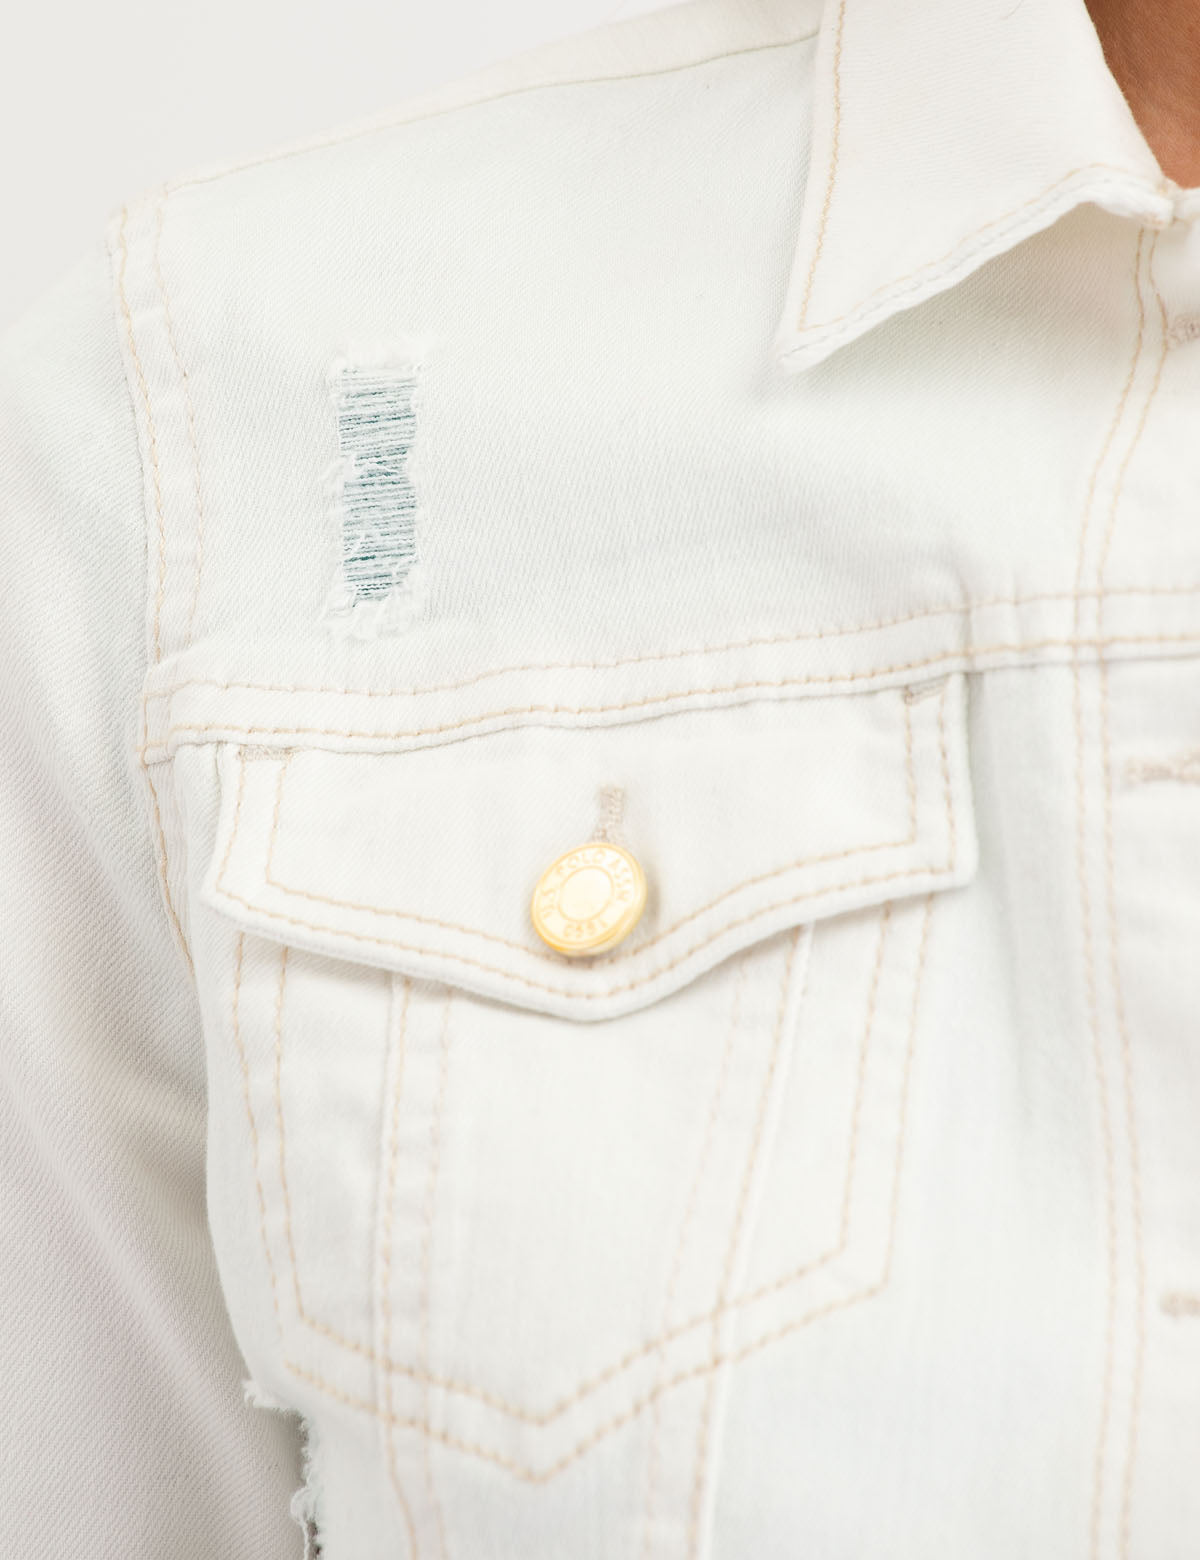 TAN DENIM JACKET - U.S. Polo Assn.